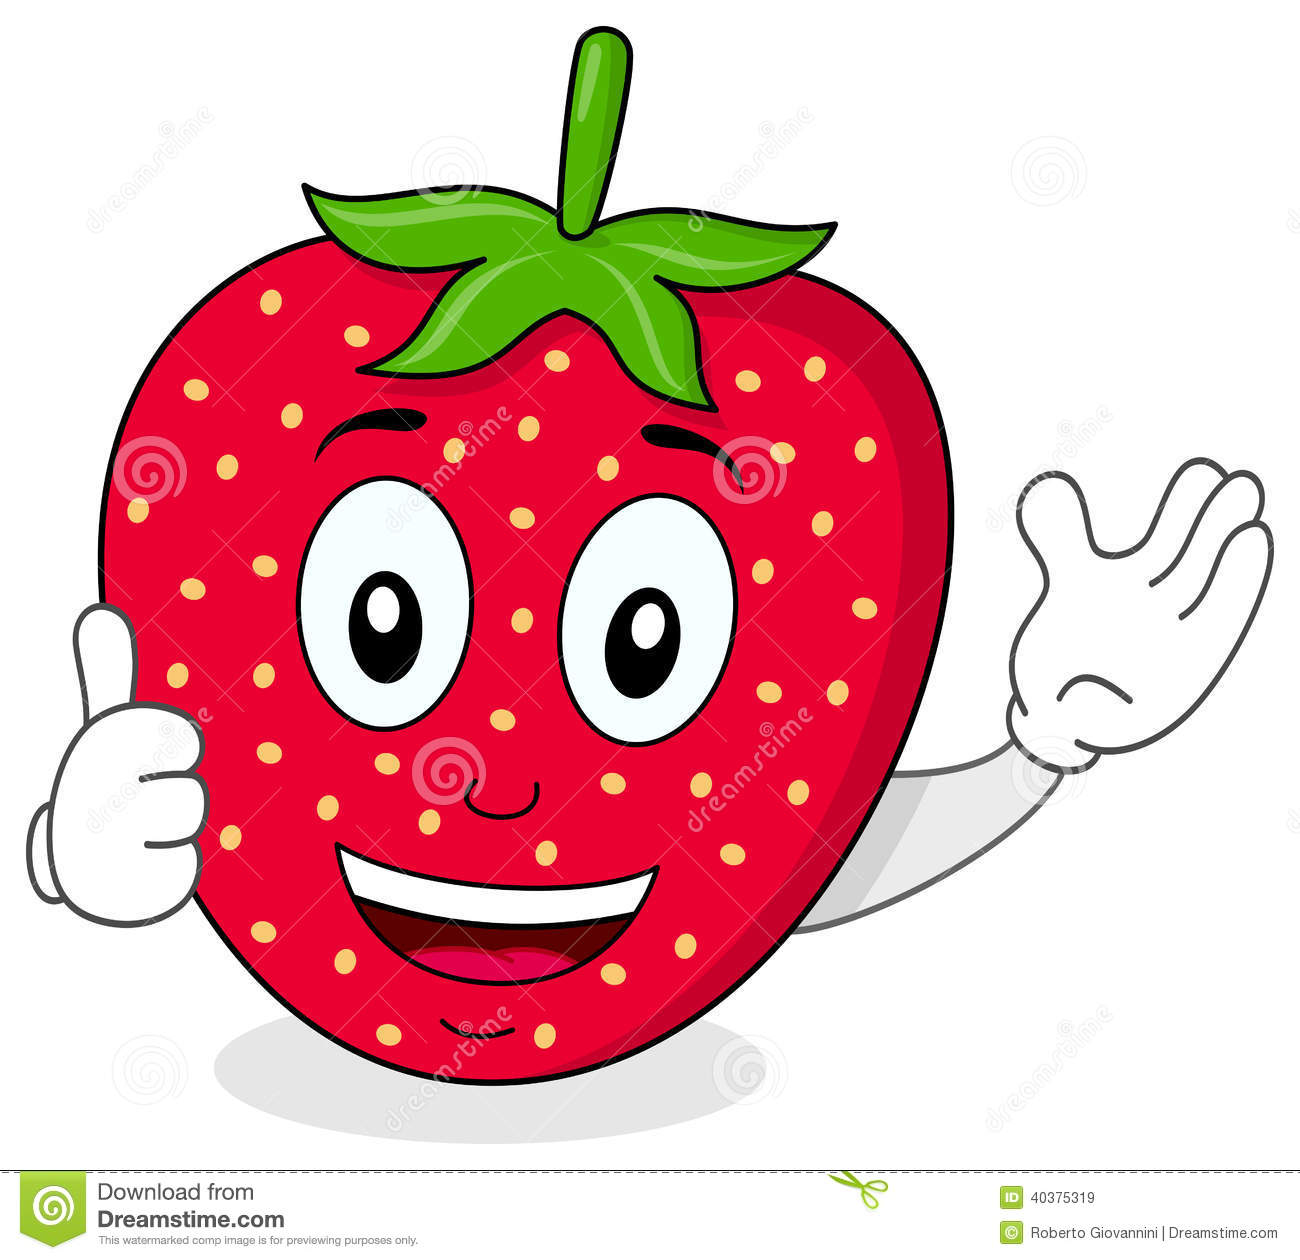 happy strawberry thumbs up character stock vector Fruits and Vegetables Background Fruits and Vegetables Background